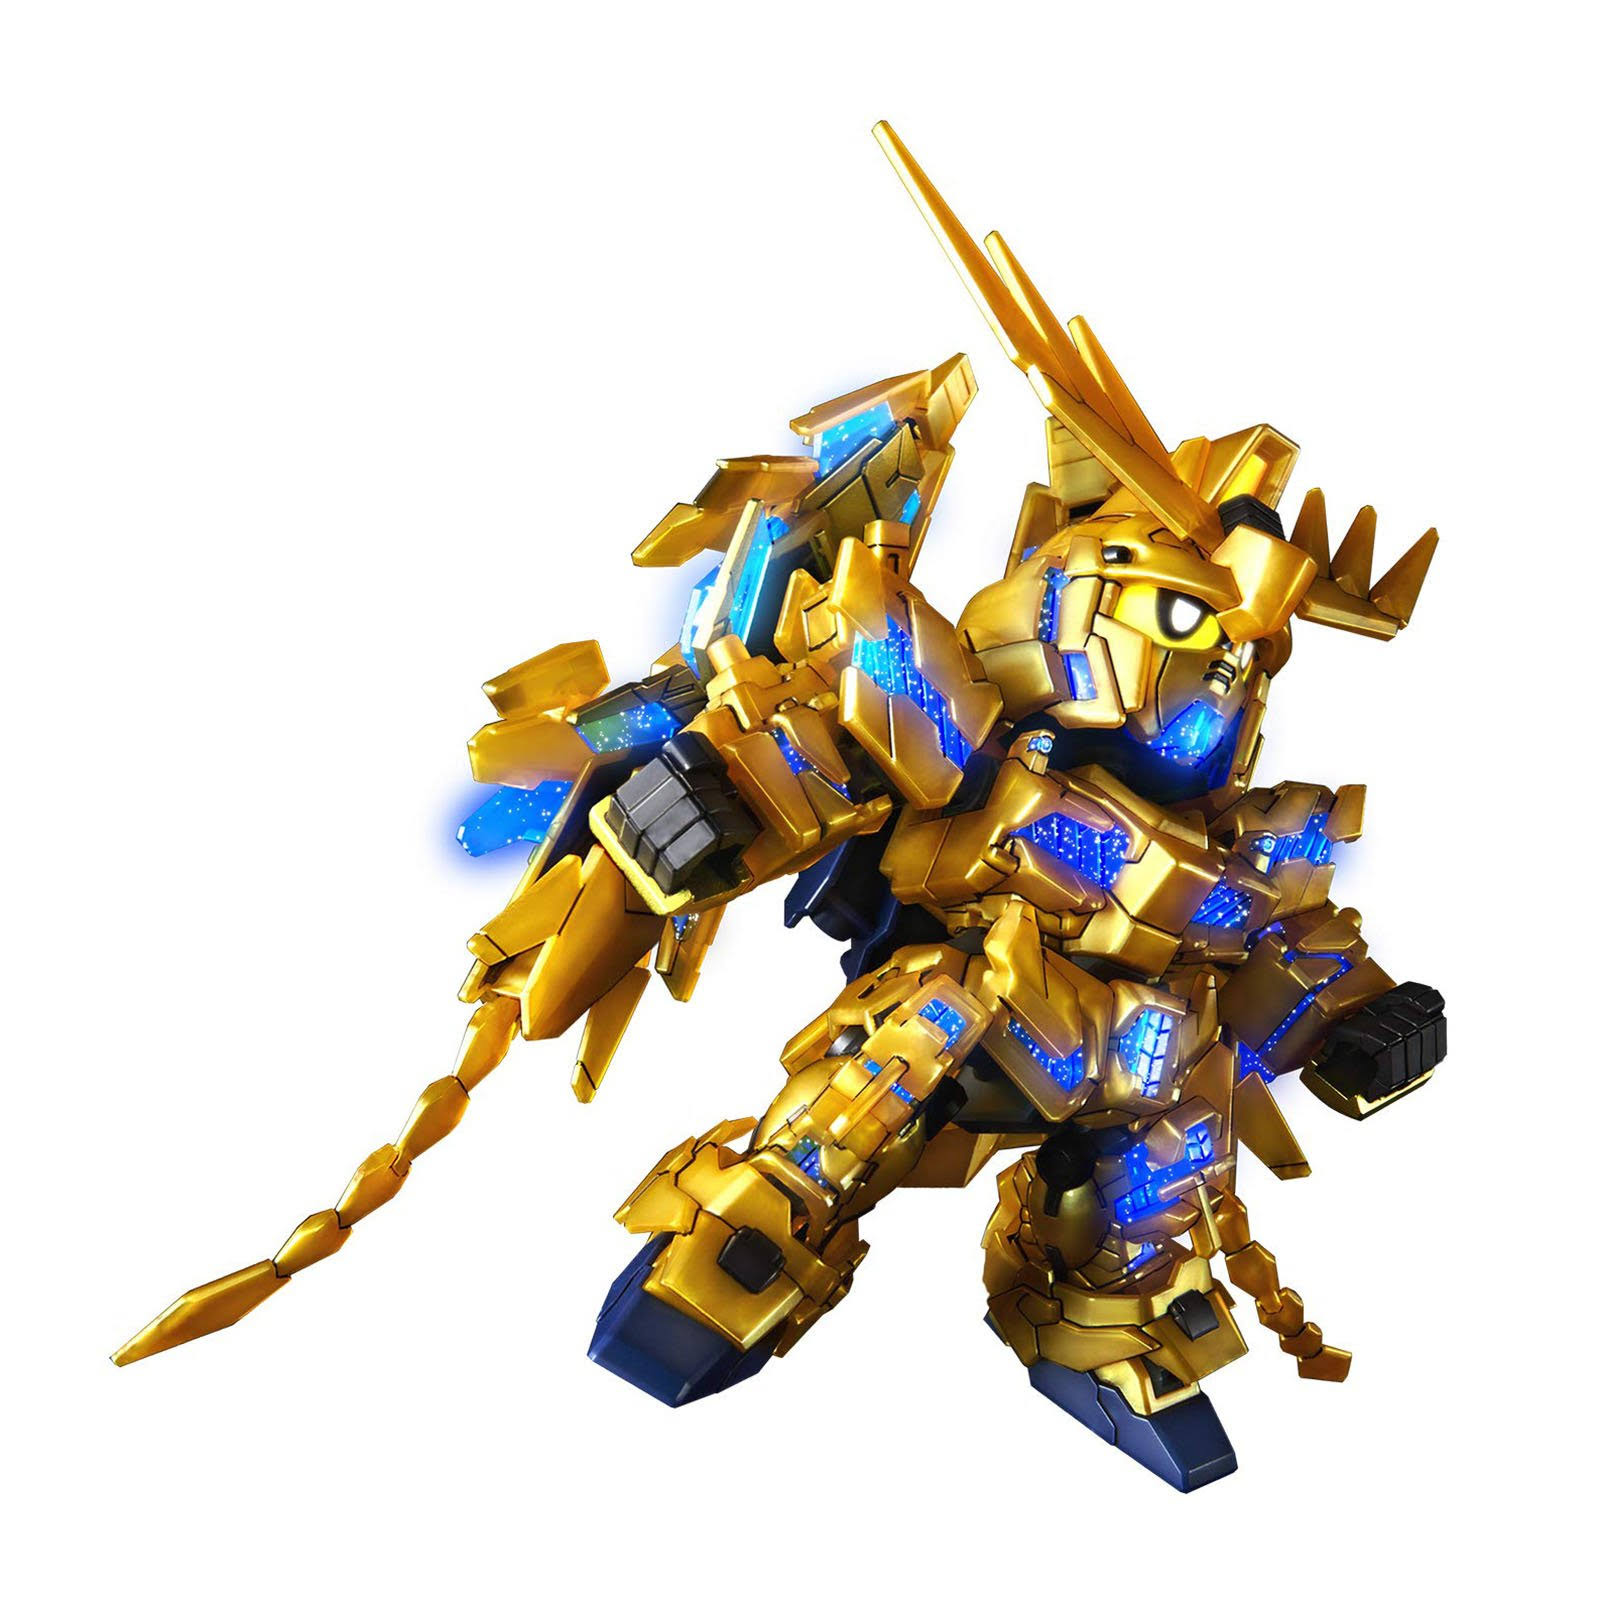 Bandai SD Cross Silhouette Unicorn Gundam 03 Phenex Plastic Model Kit